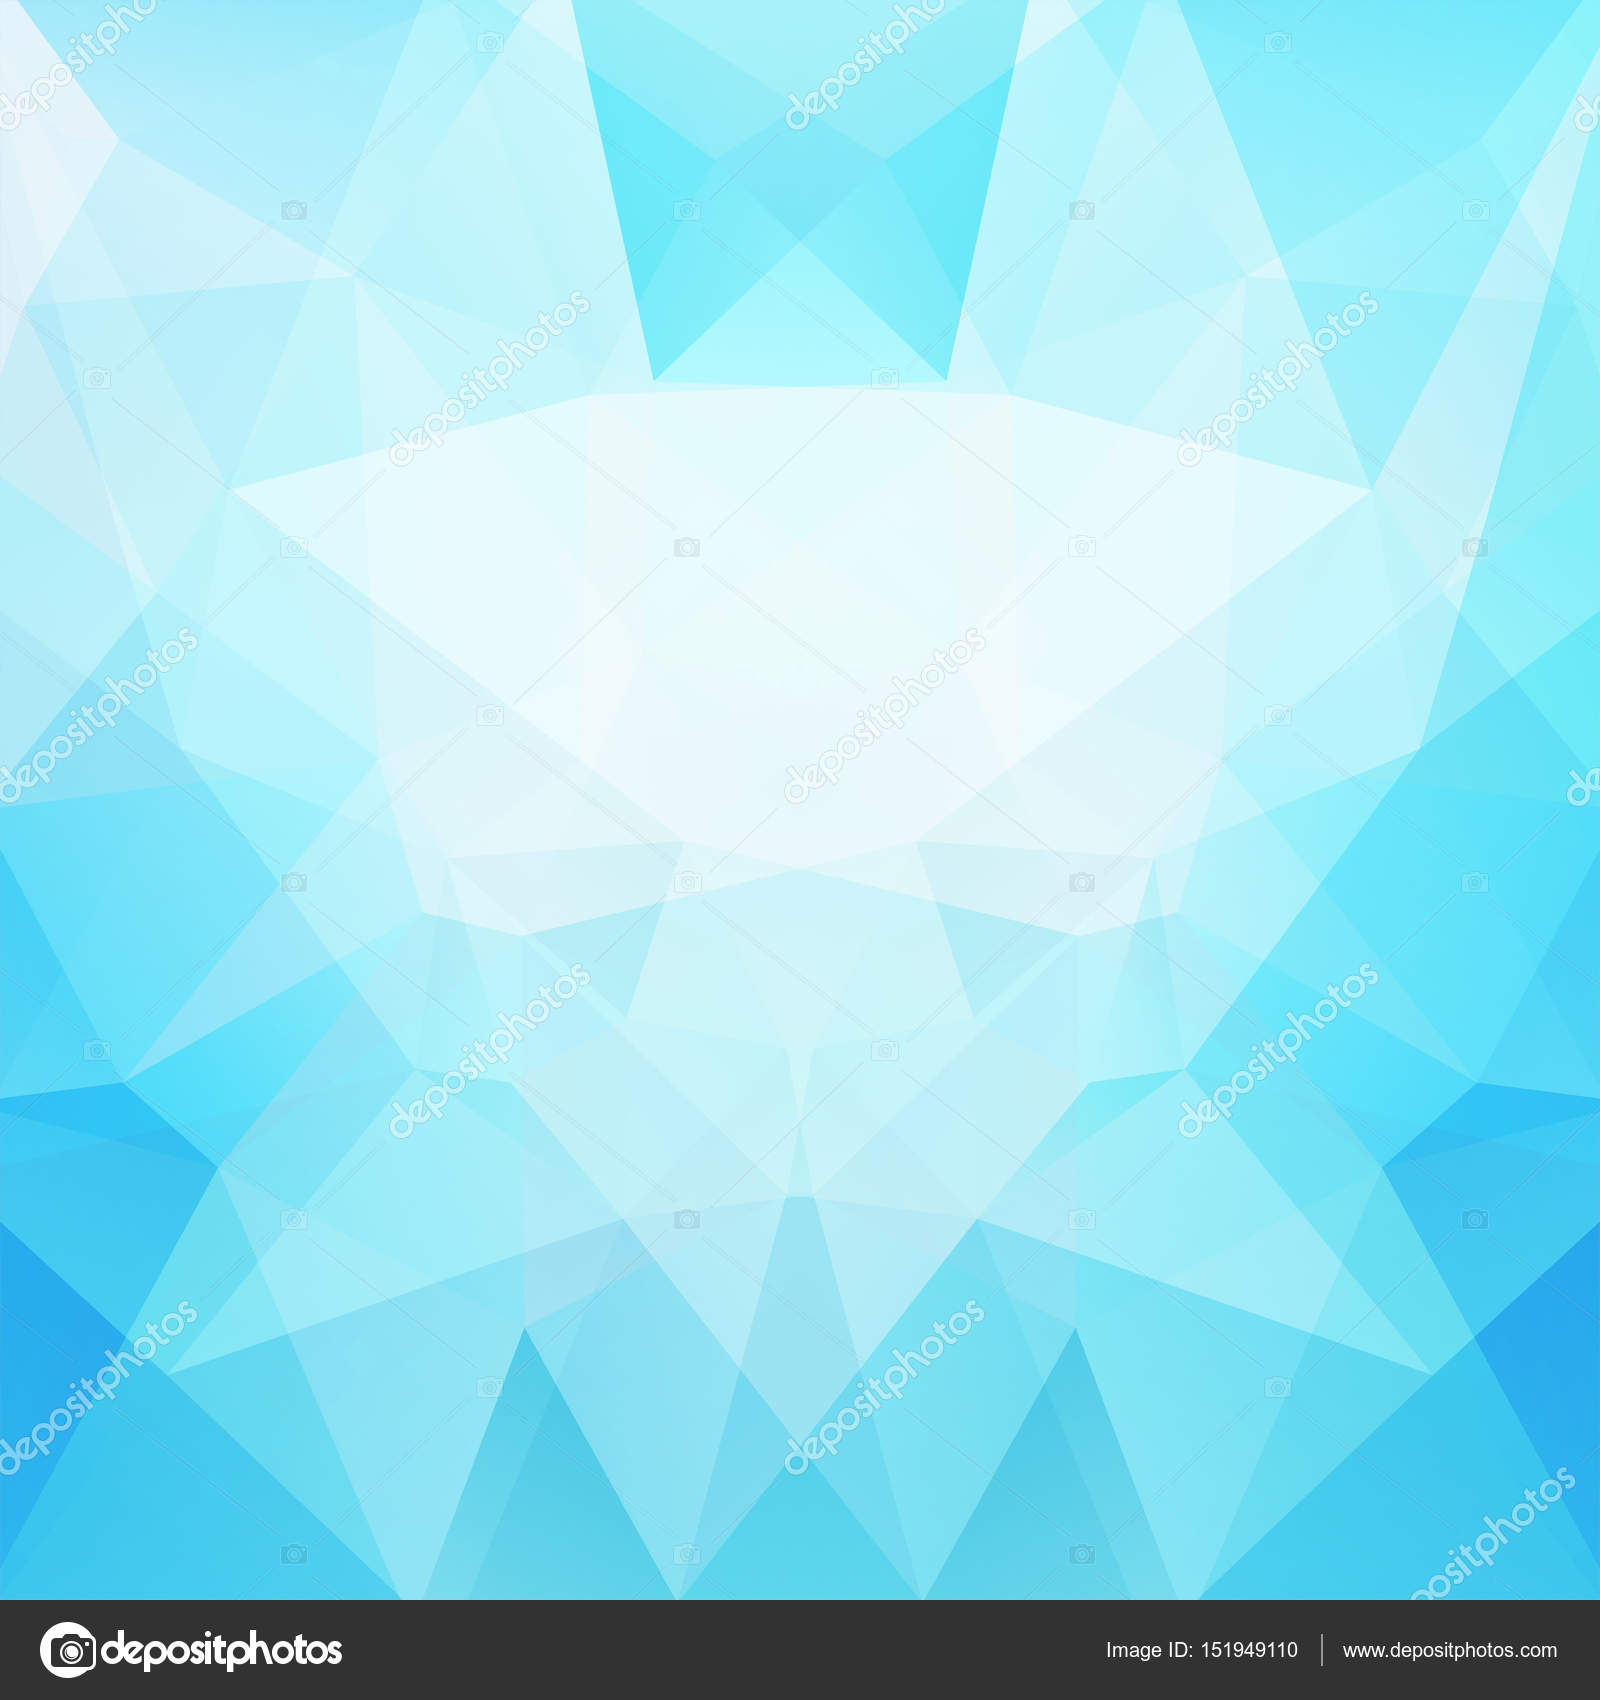 Geometric pattern, polygon triangles vector background in